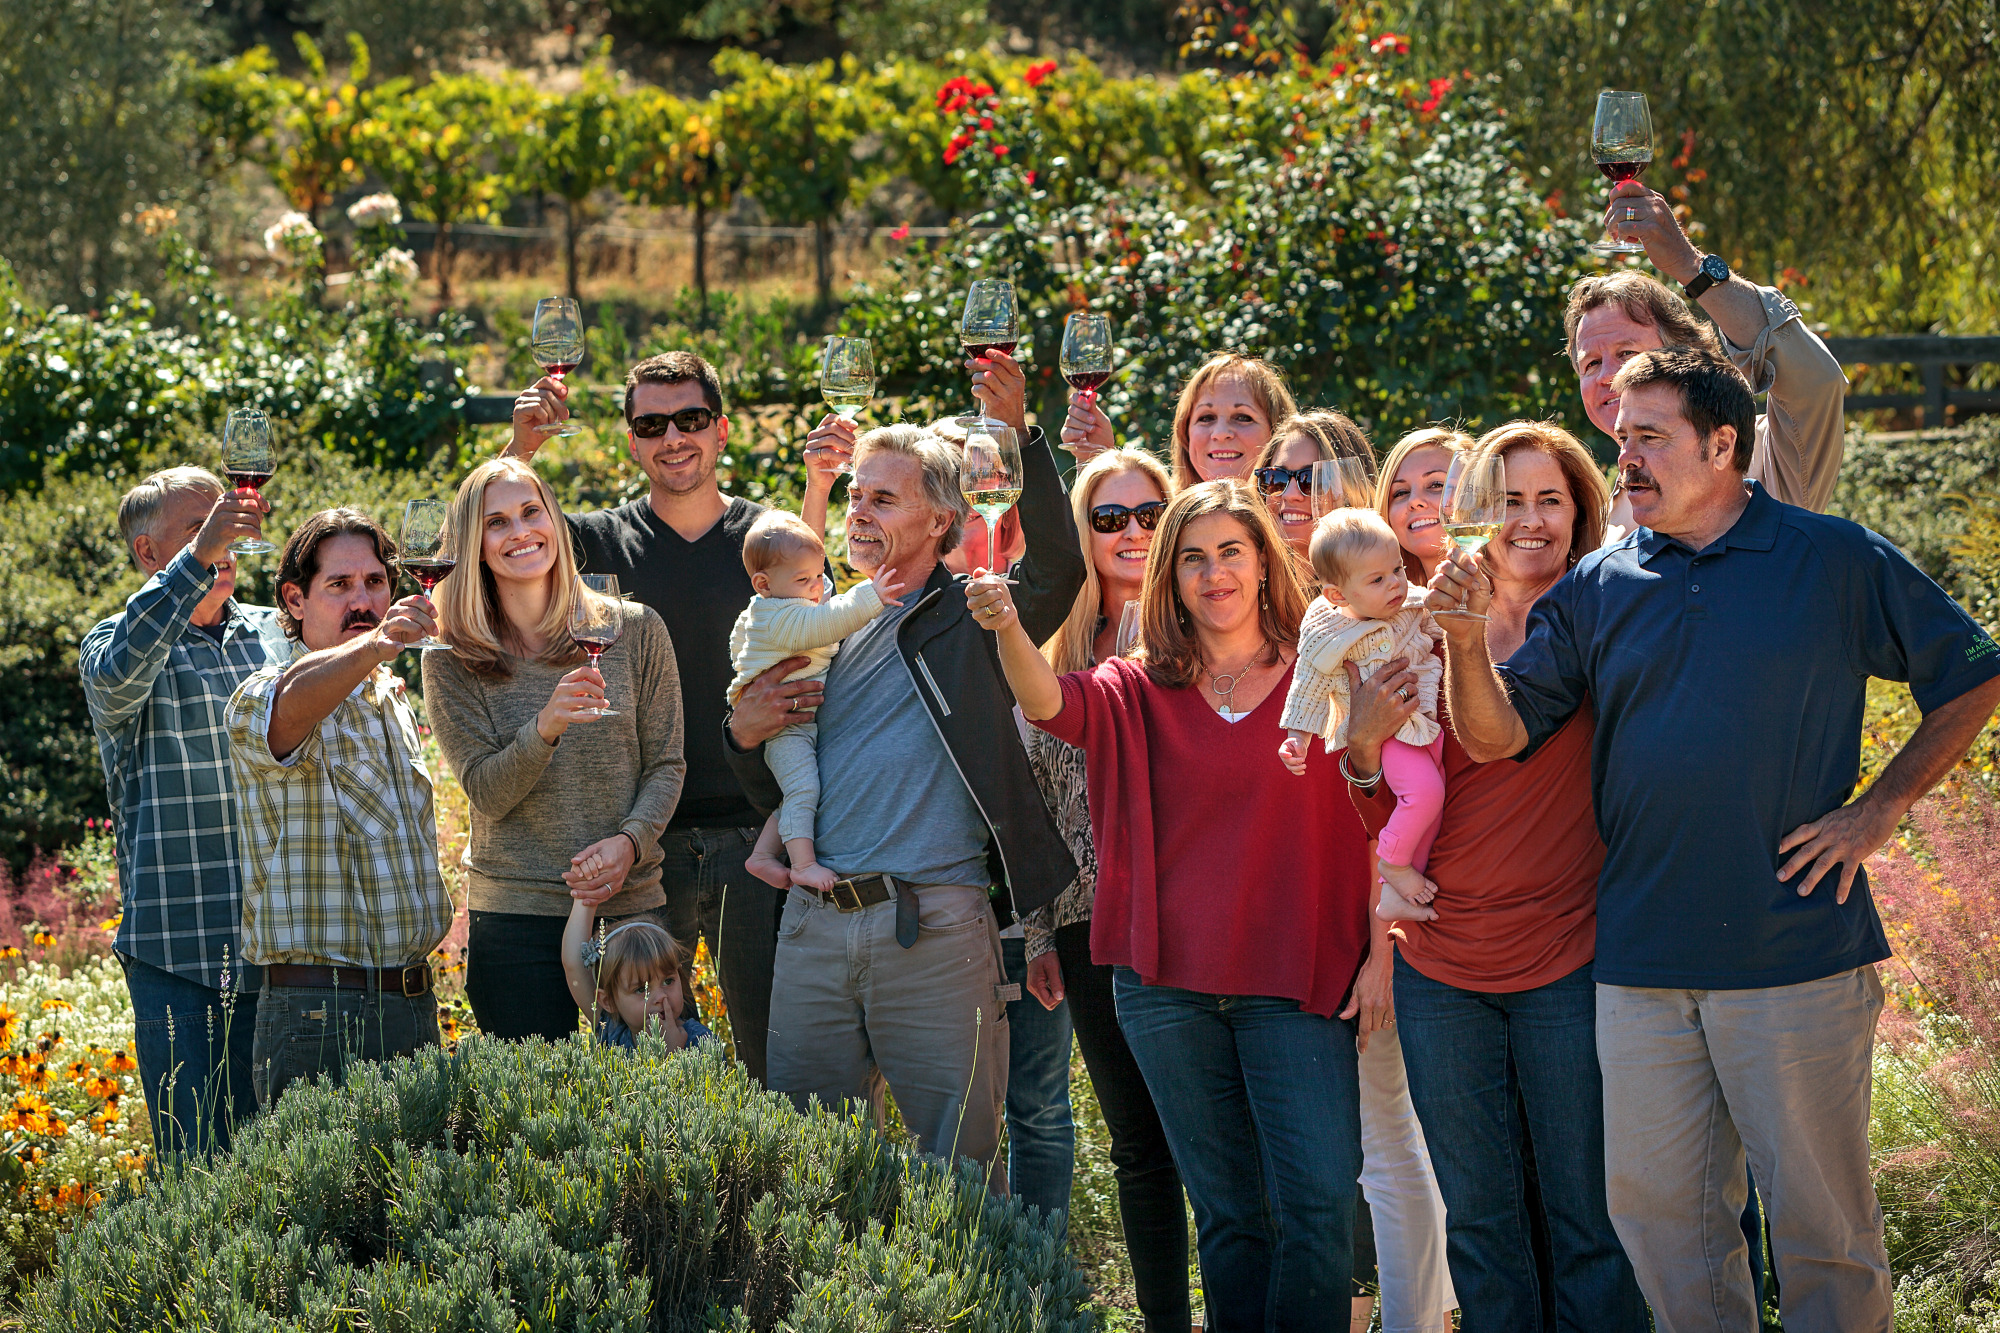 The Benzigers, wine makers from Glen Ellen, enjoying a holiday meal